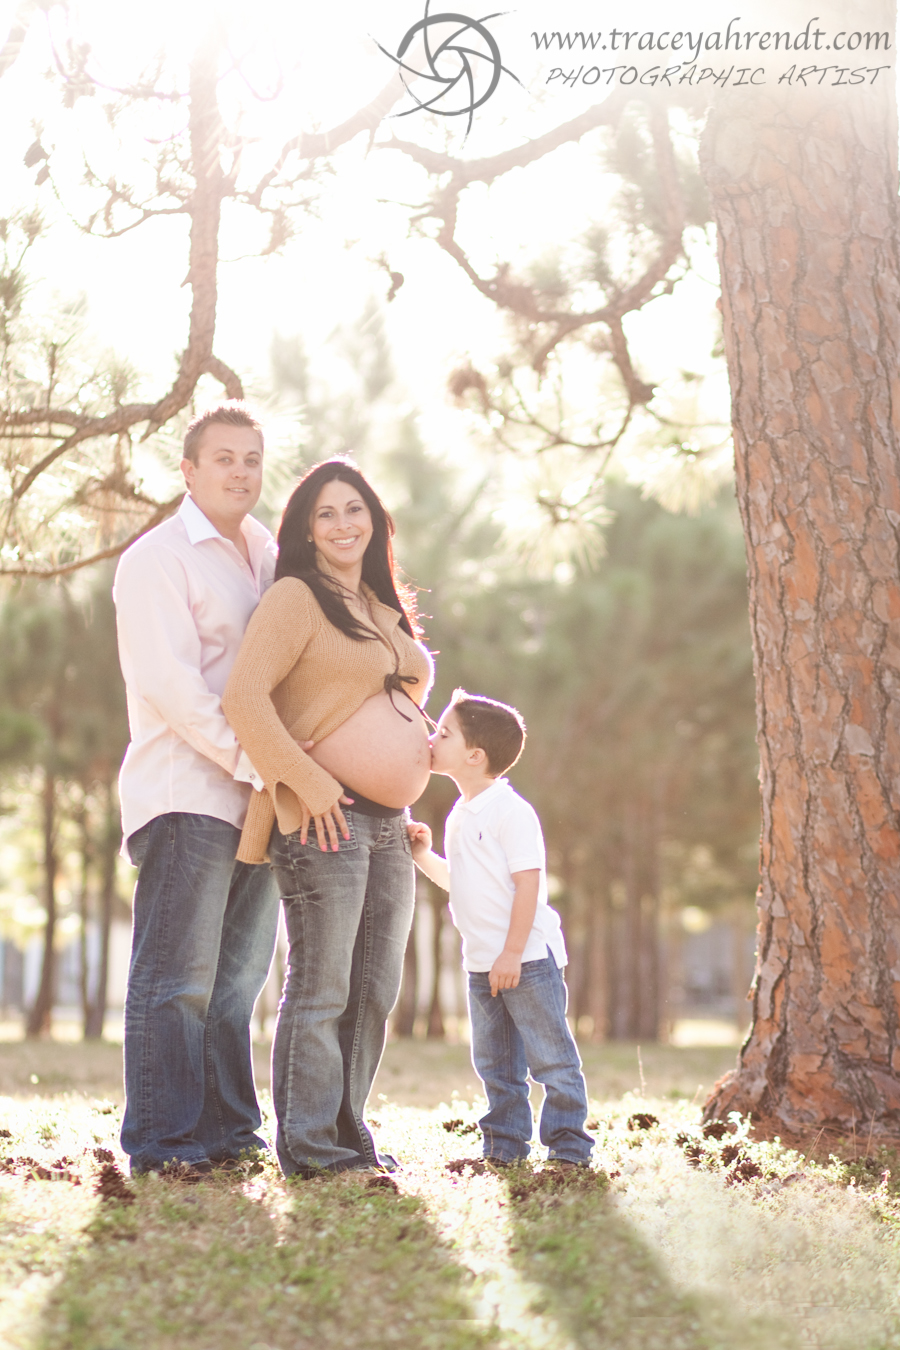 Family Love - Maternity Portraits